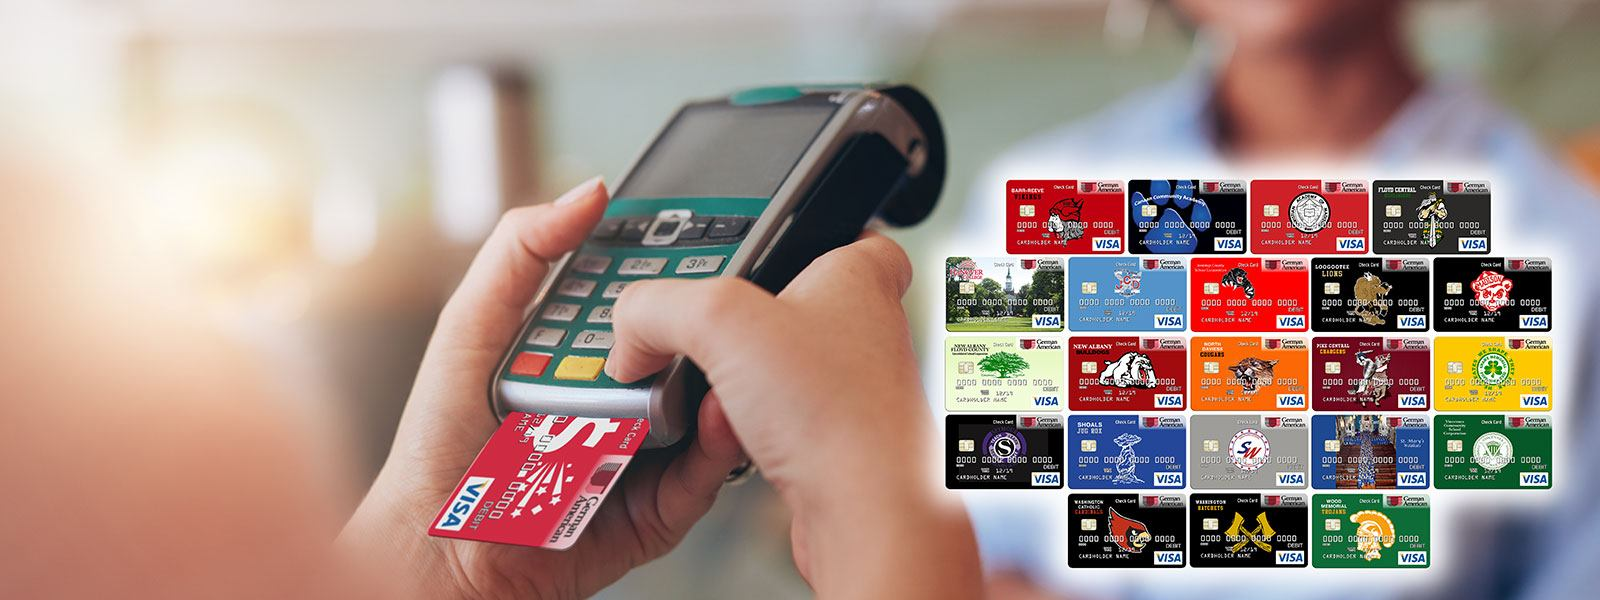 German/customer/account/create - Paying With Electronic Card School Spirit Card Samples Available Presented